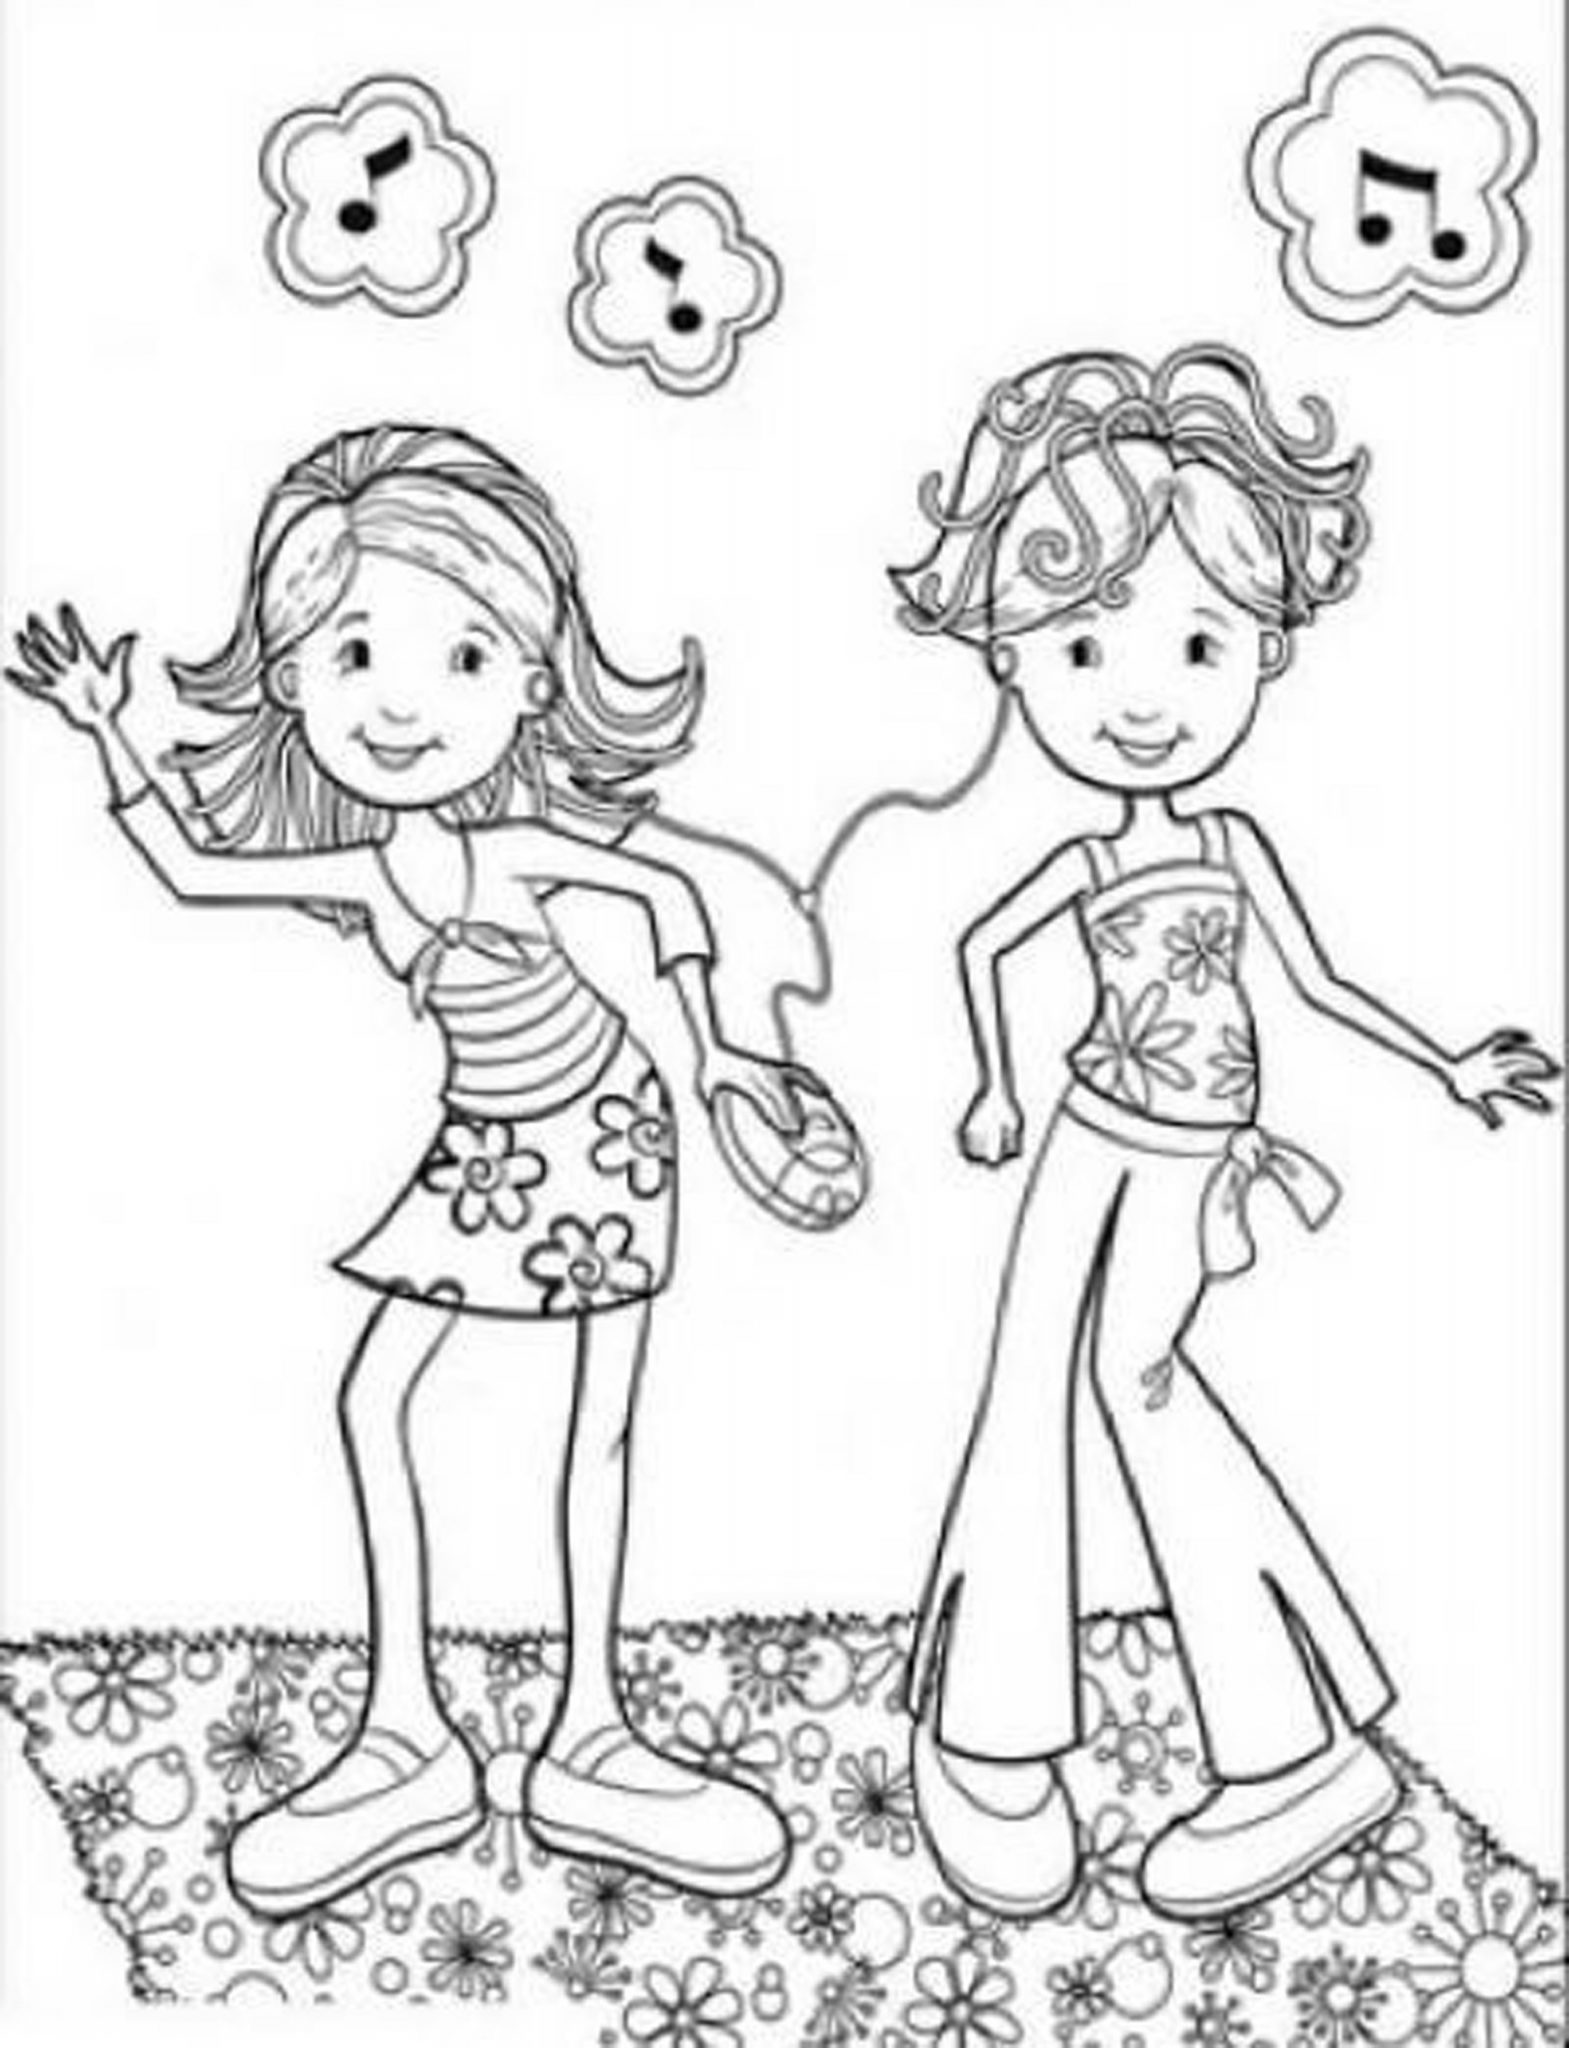 girls coloring pages print download coloring pages for girls recommend a pages girls coloring